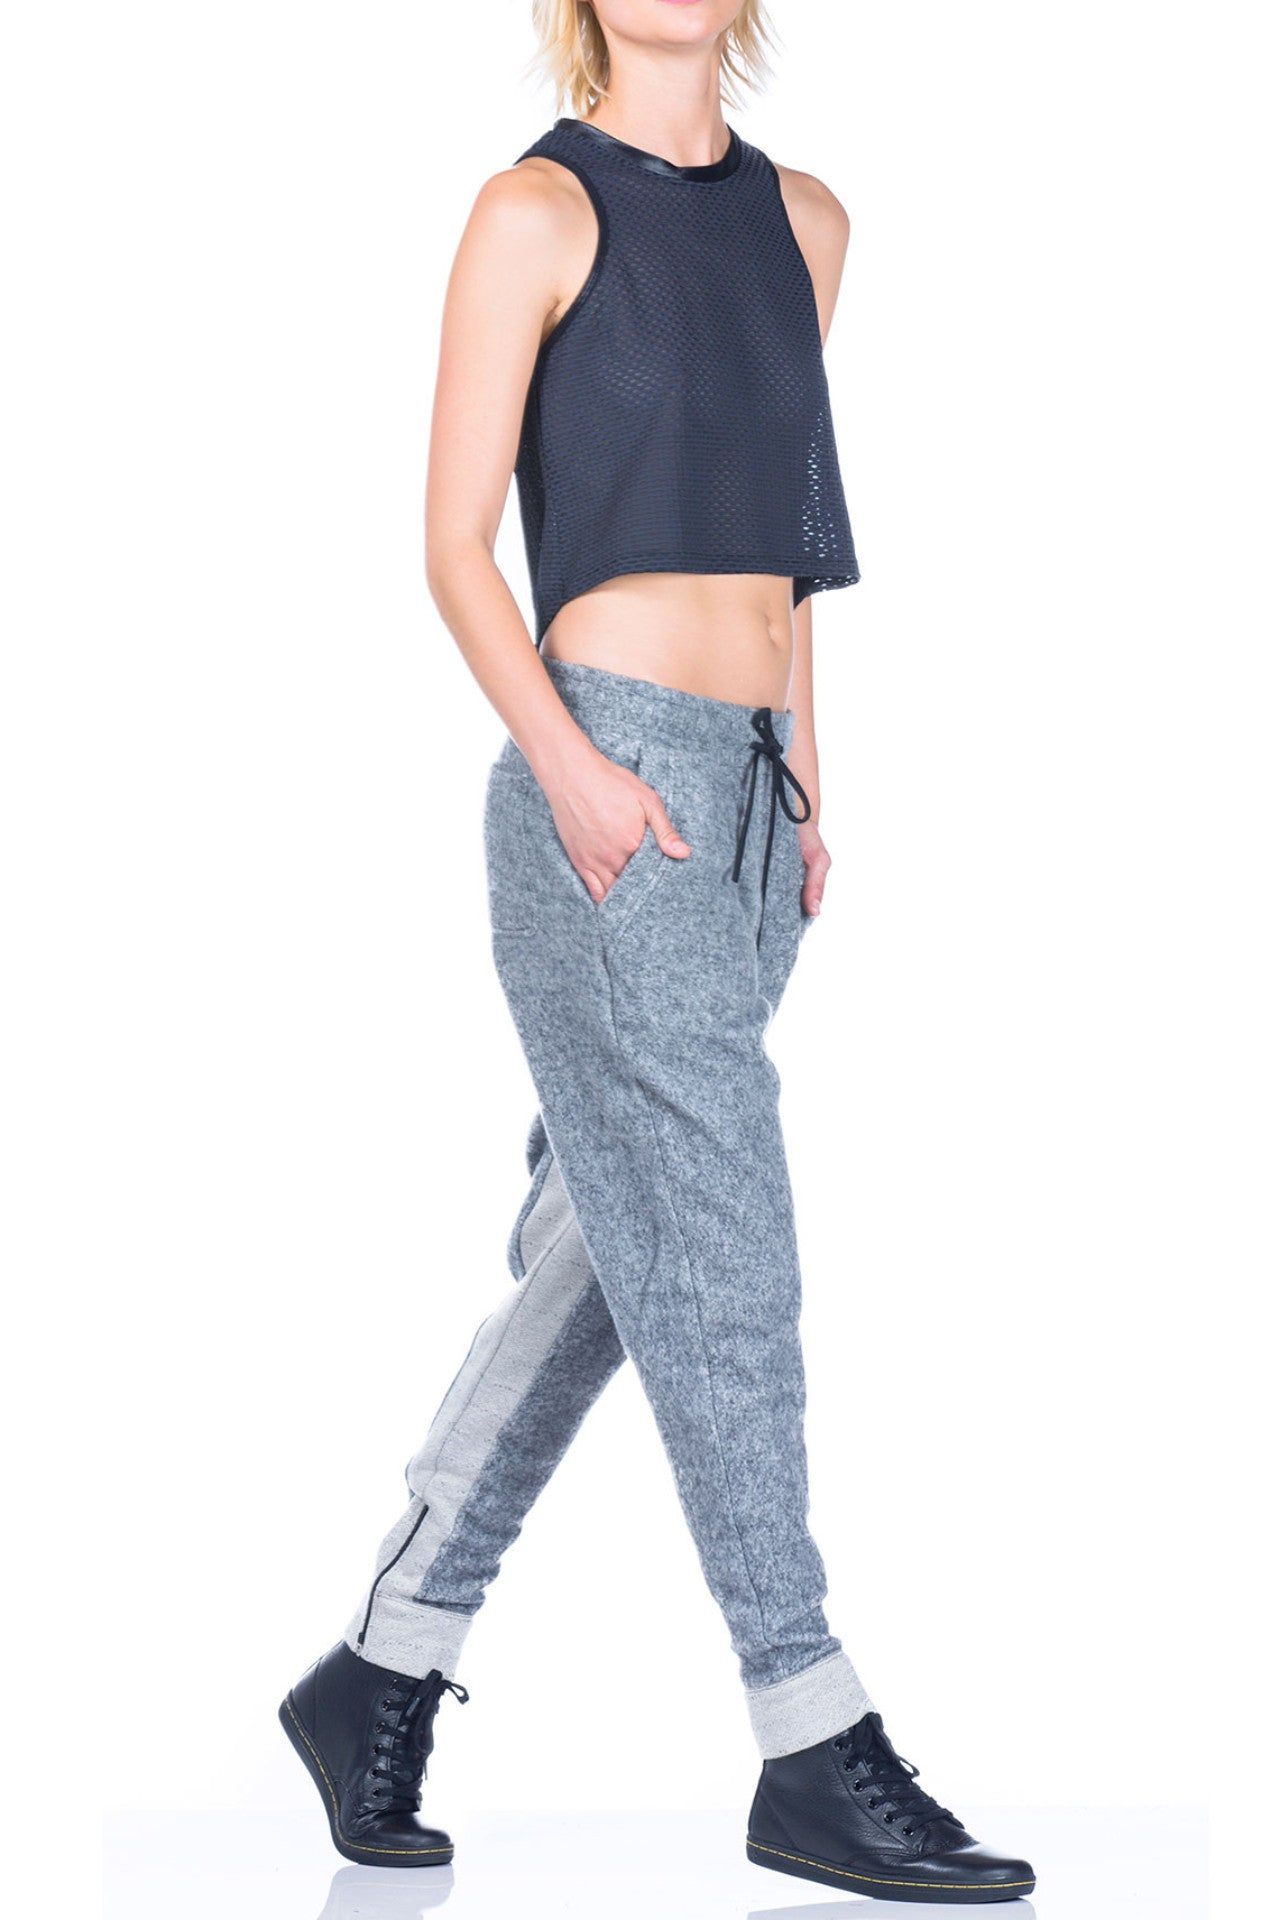 Koral Edge Sweatpants - Sculptique